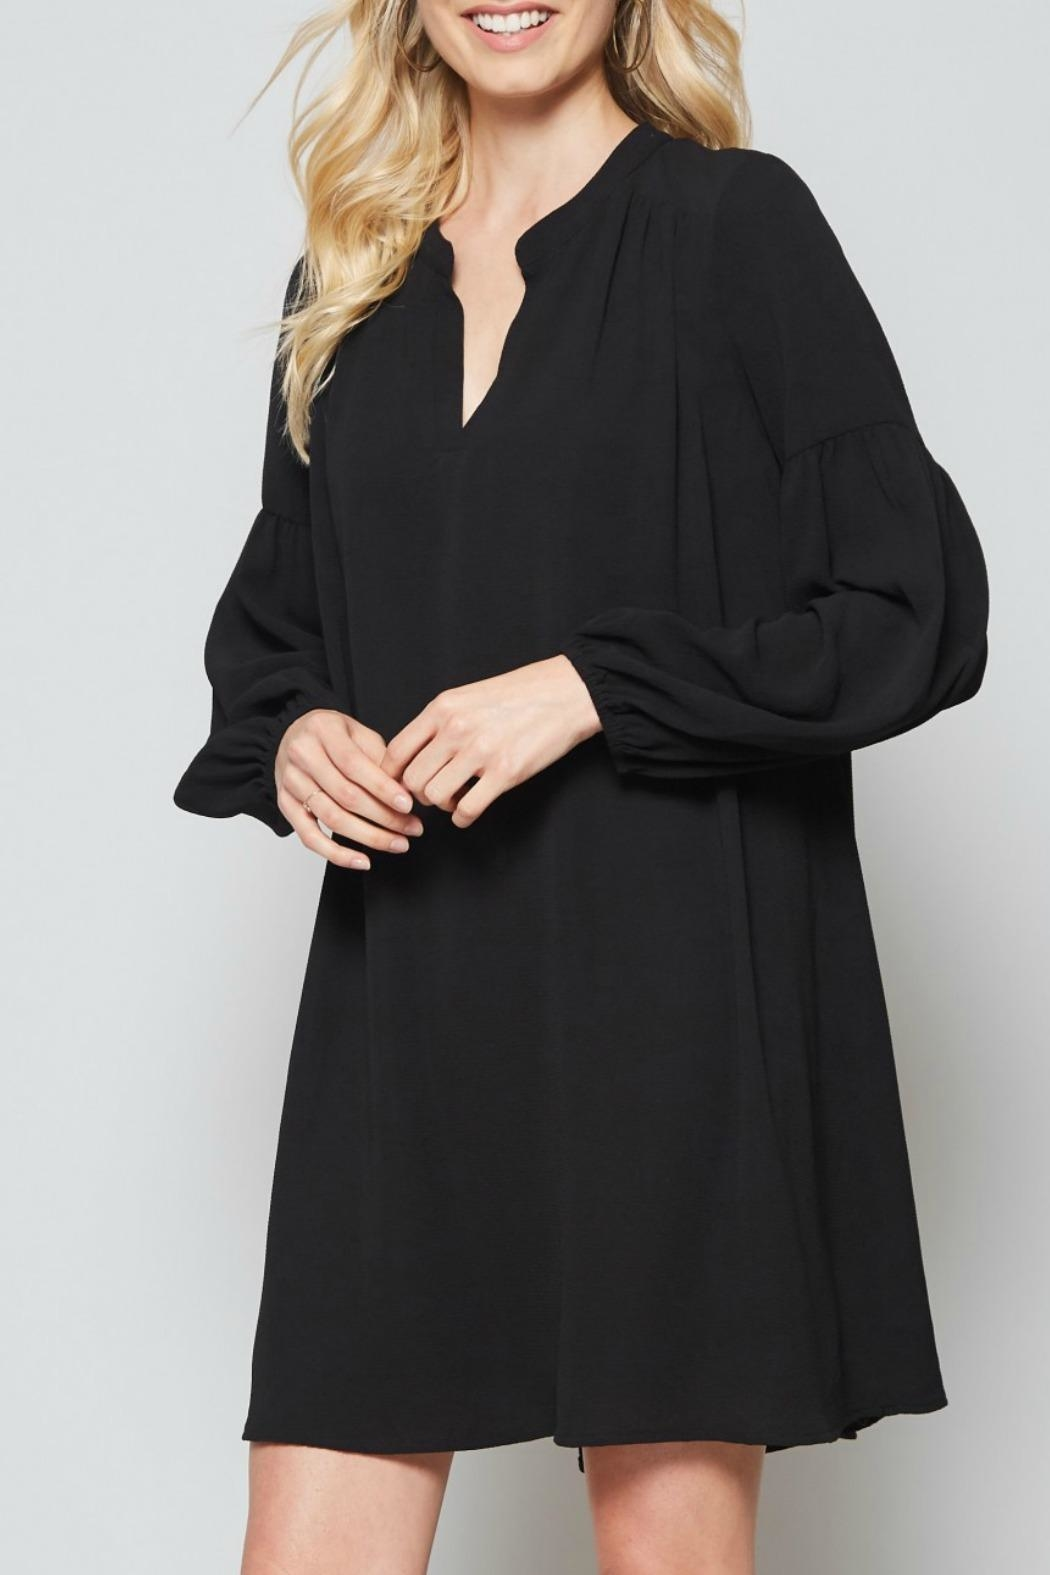 Andree by Unit Black Shift Dress - Front Full Image